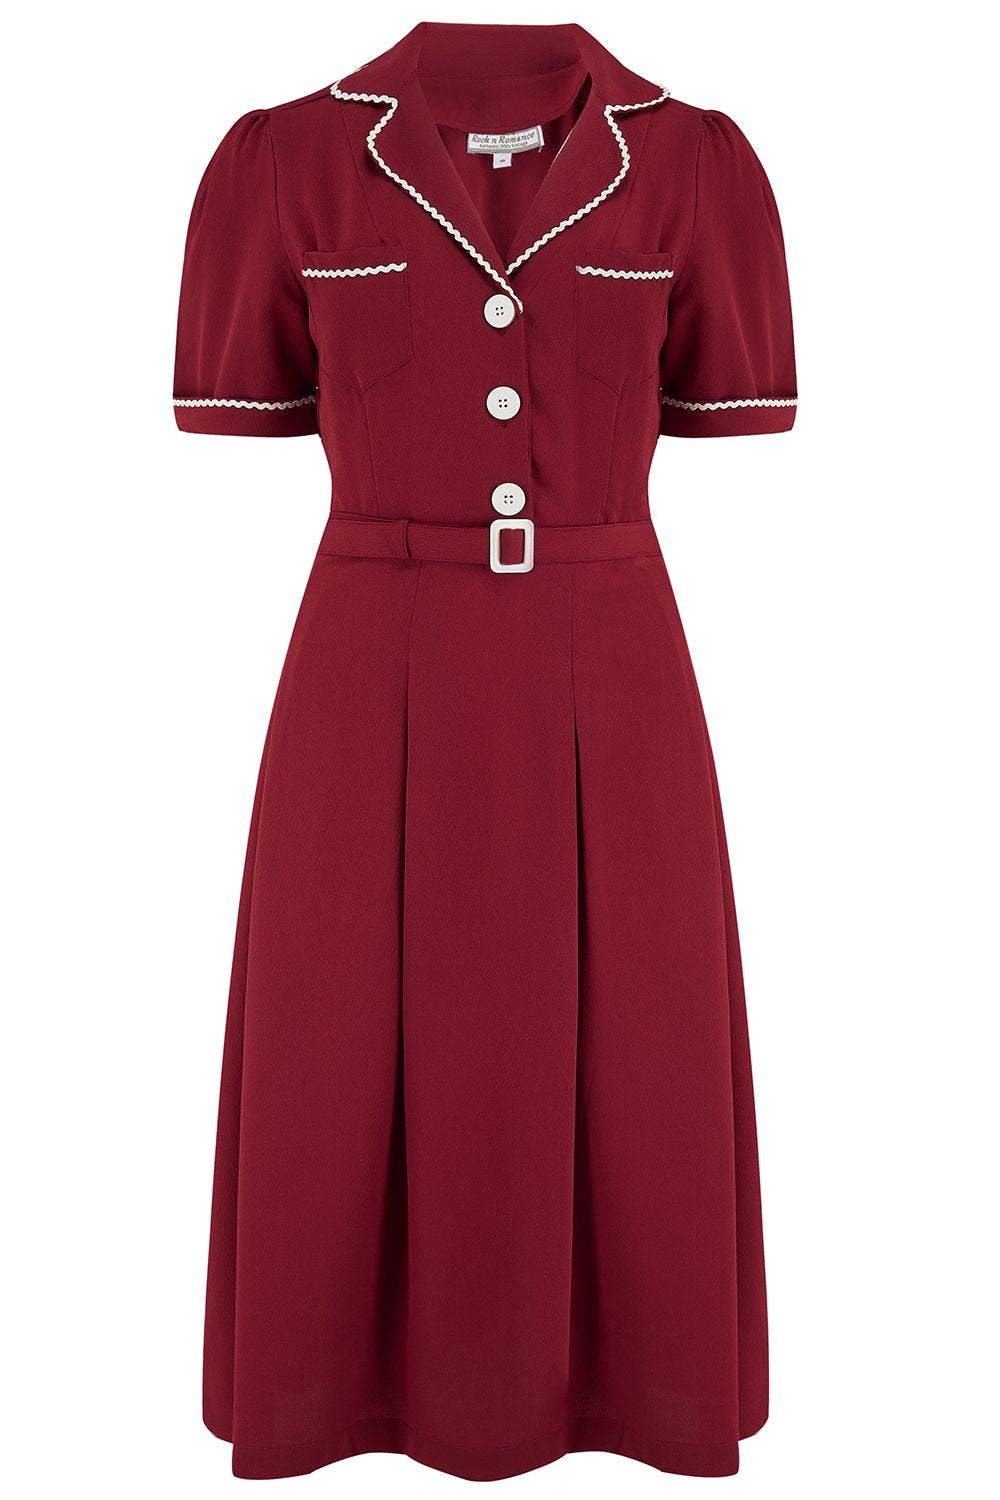 Vintage Shirtwaist Dress History Pre-Order The Kitty Shirtwaister Dress in Wine with Contrast Ric-Rac True Late 40s Early 1950s Vintage Style £49.00 AT vintagedancer.com